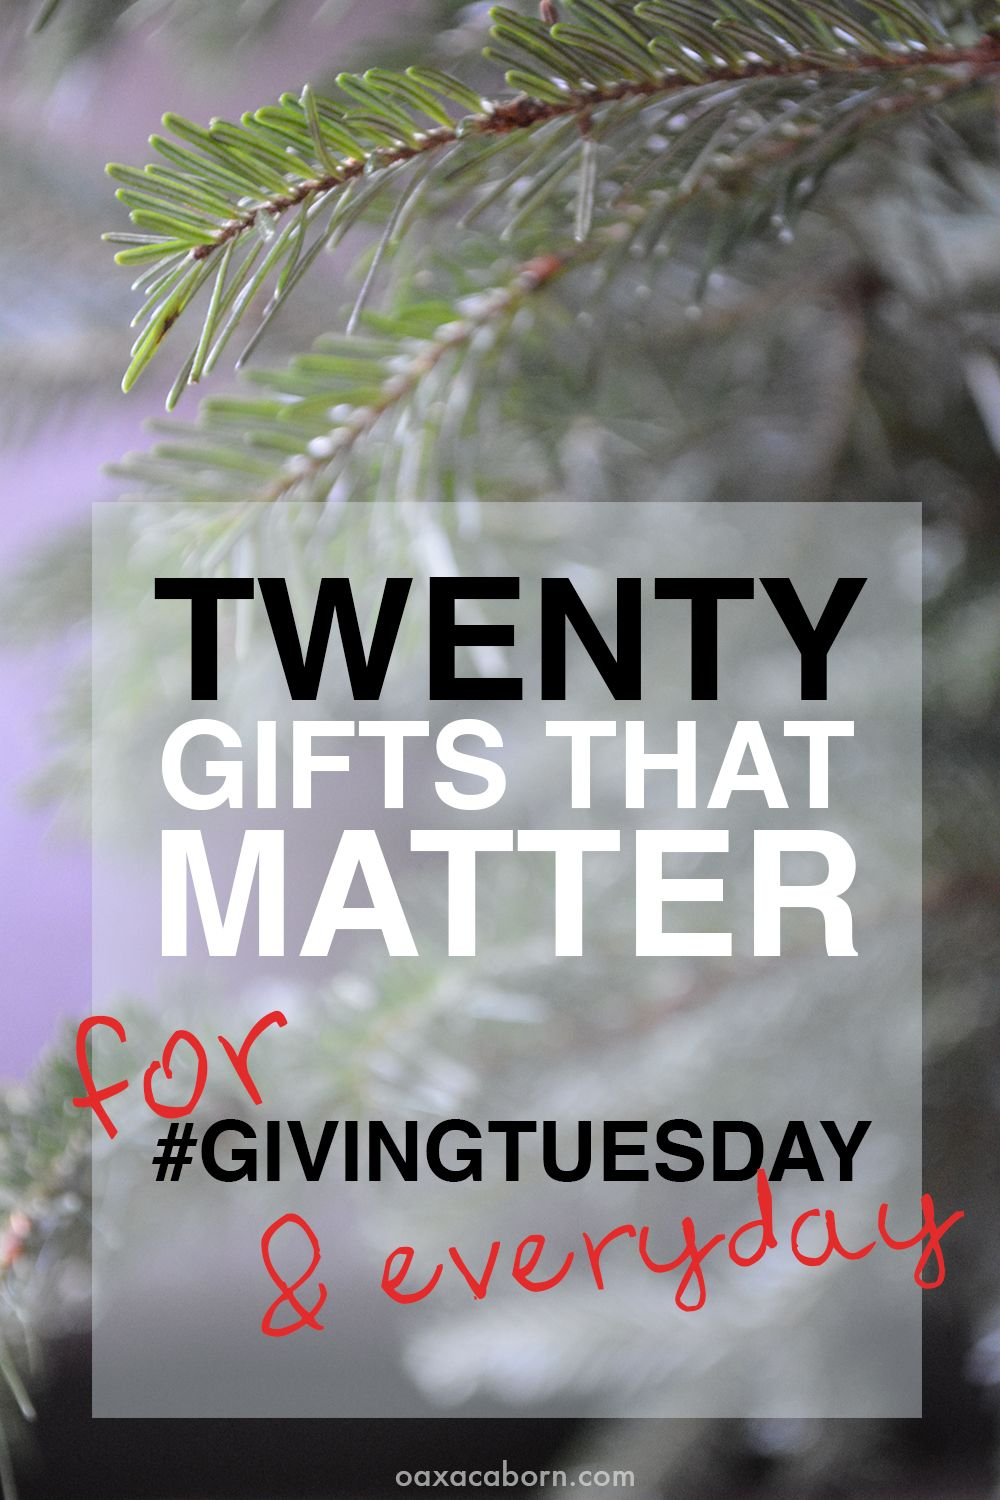 20 Charitable Christmas Gift Ideas That Make a Difference ...